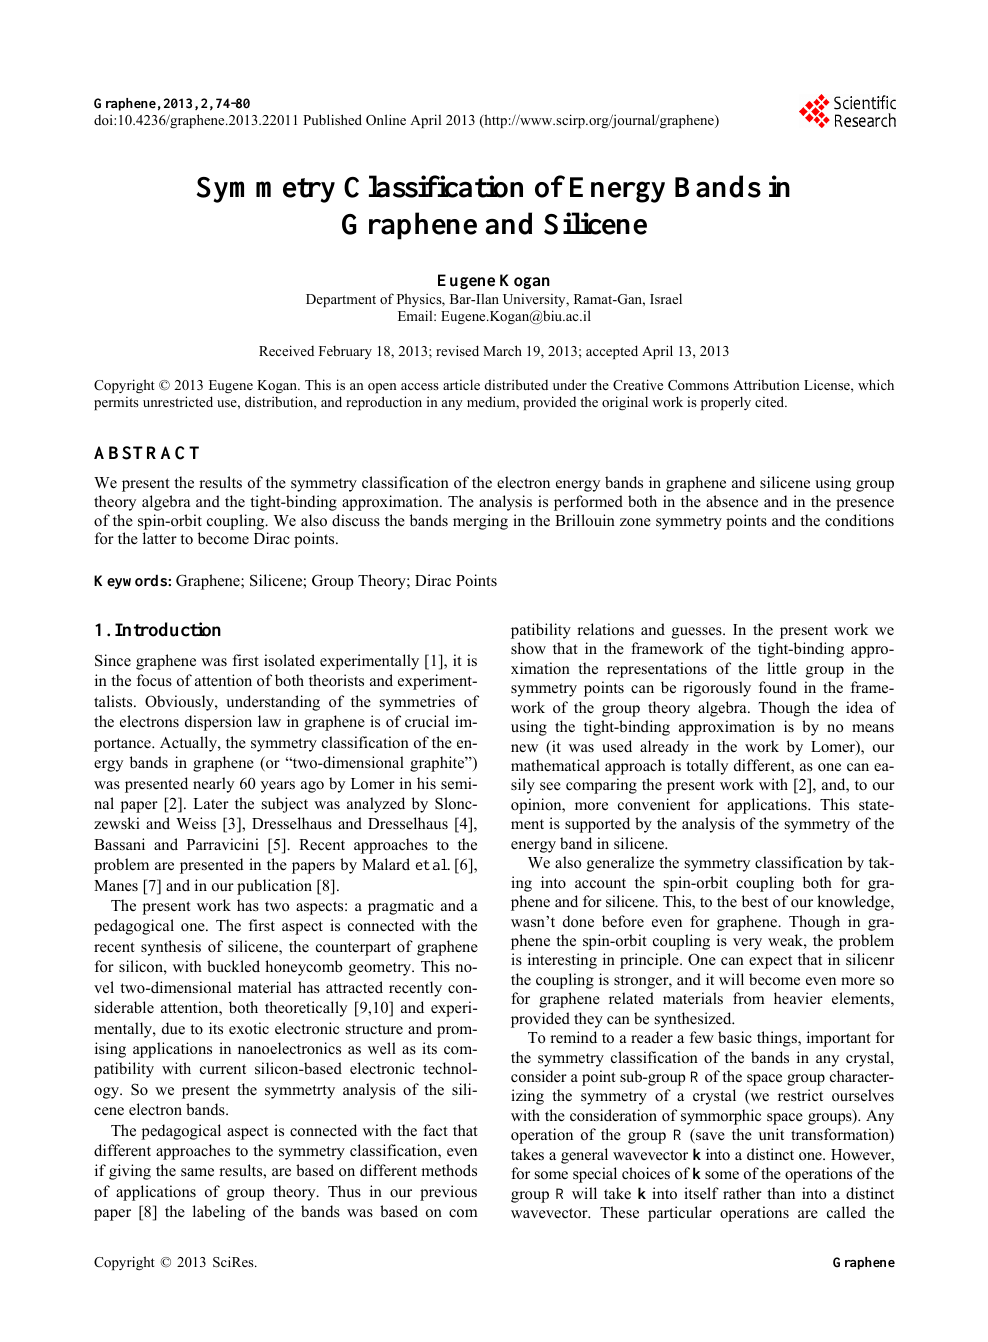 Symmetry Classification of Energy Bands in Graphene and